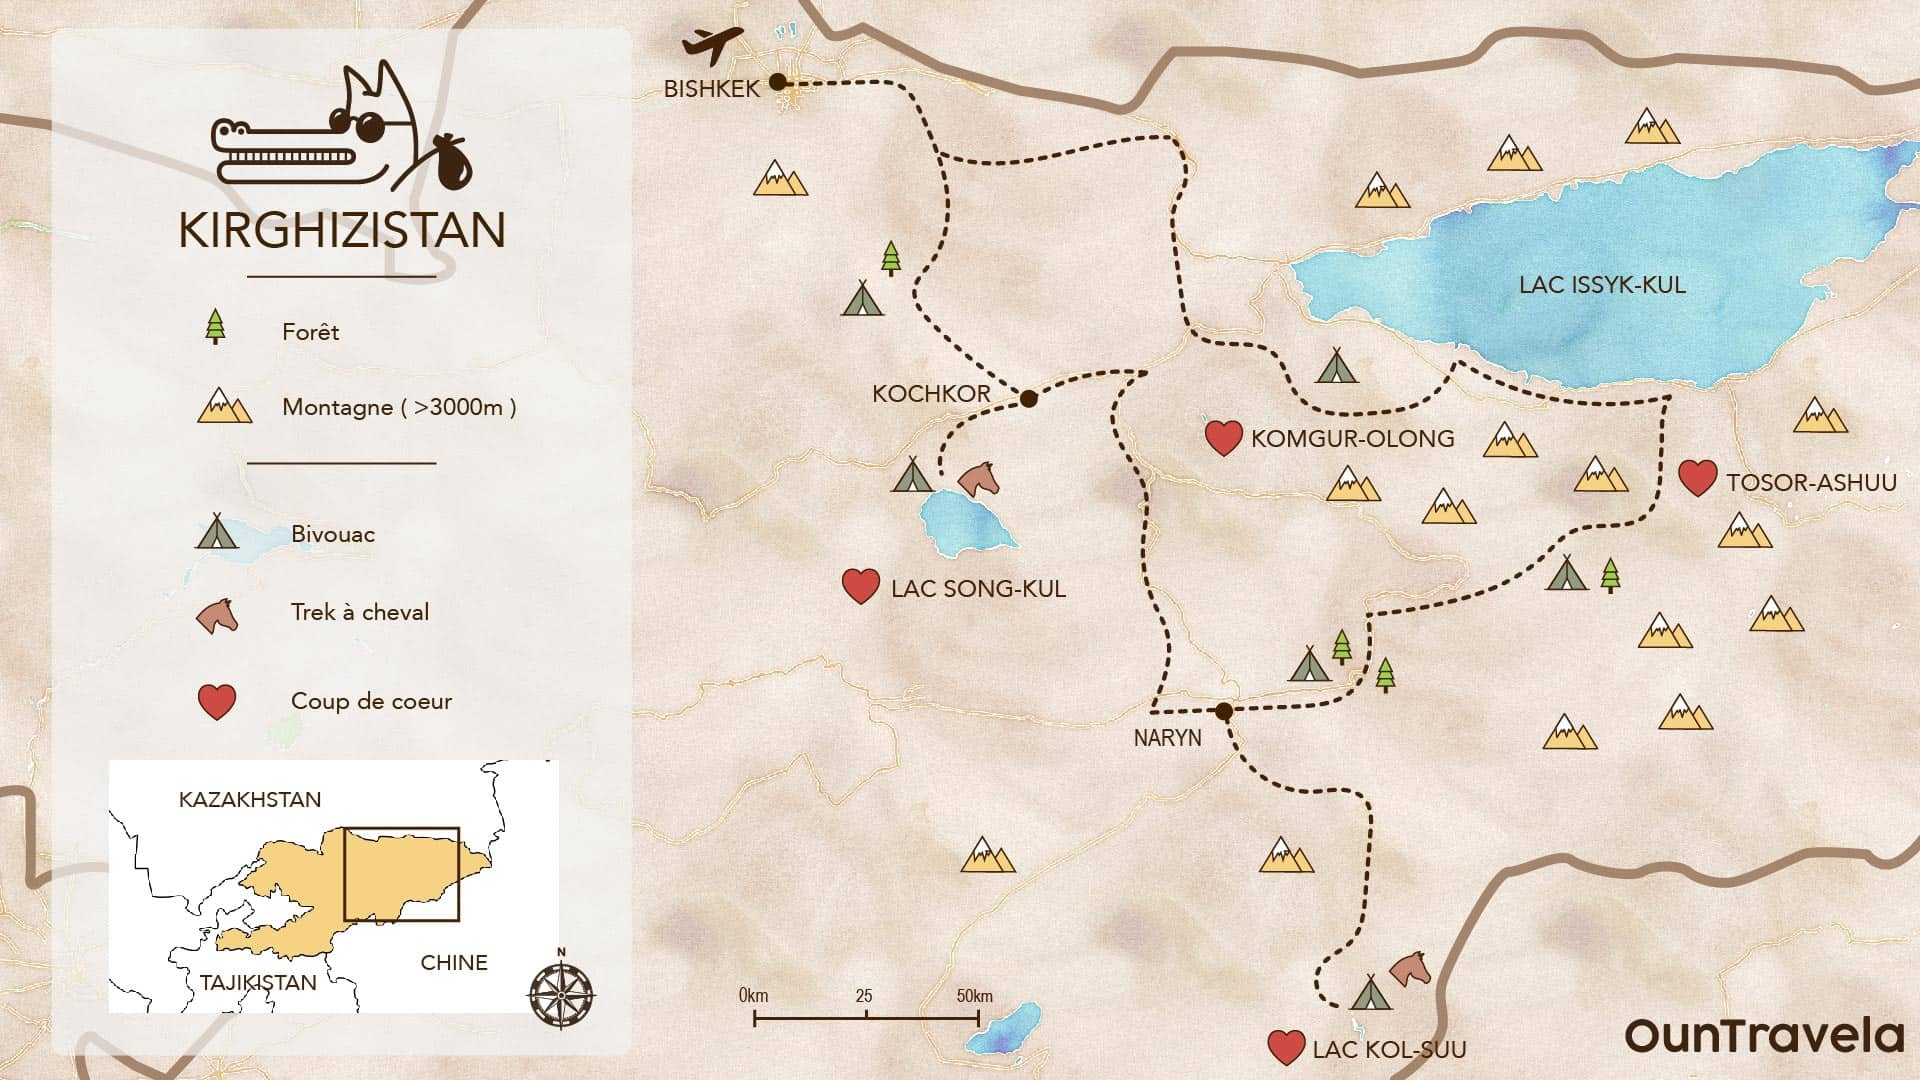 Off road 4x4 map of Kyrgyzstan overland bivouac spot point of view